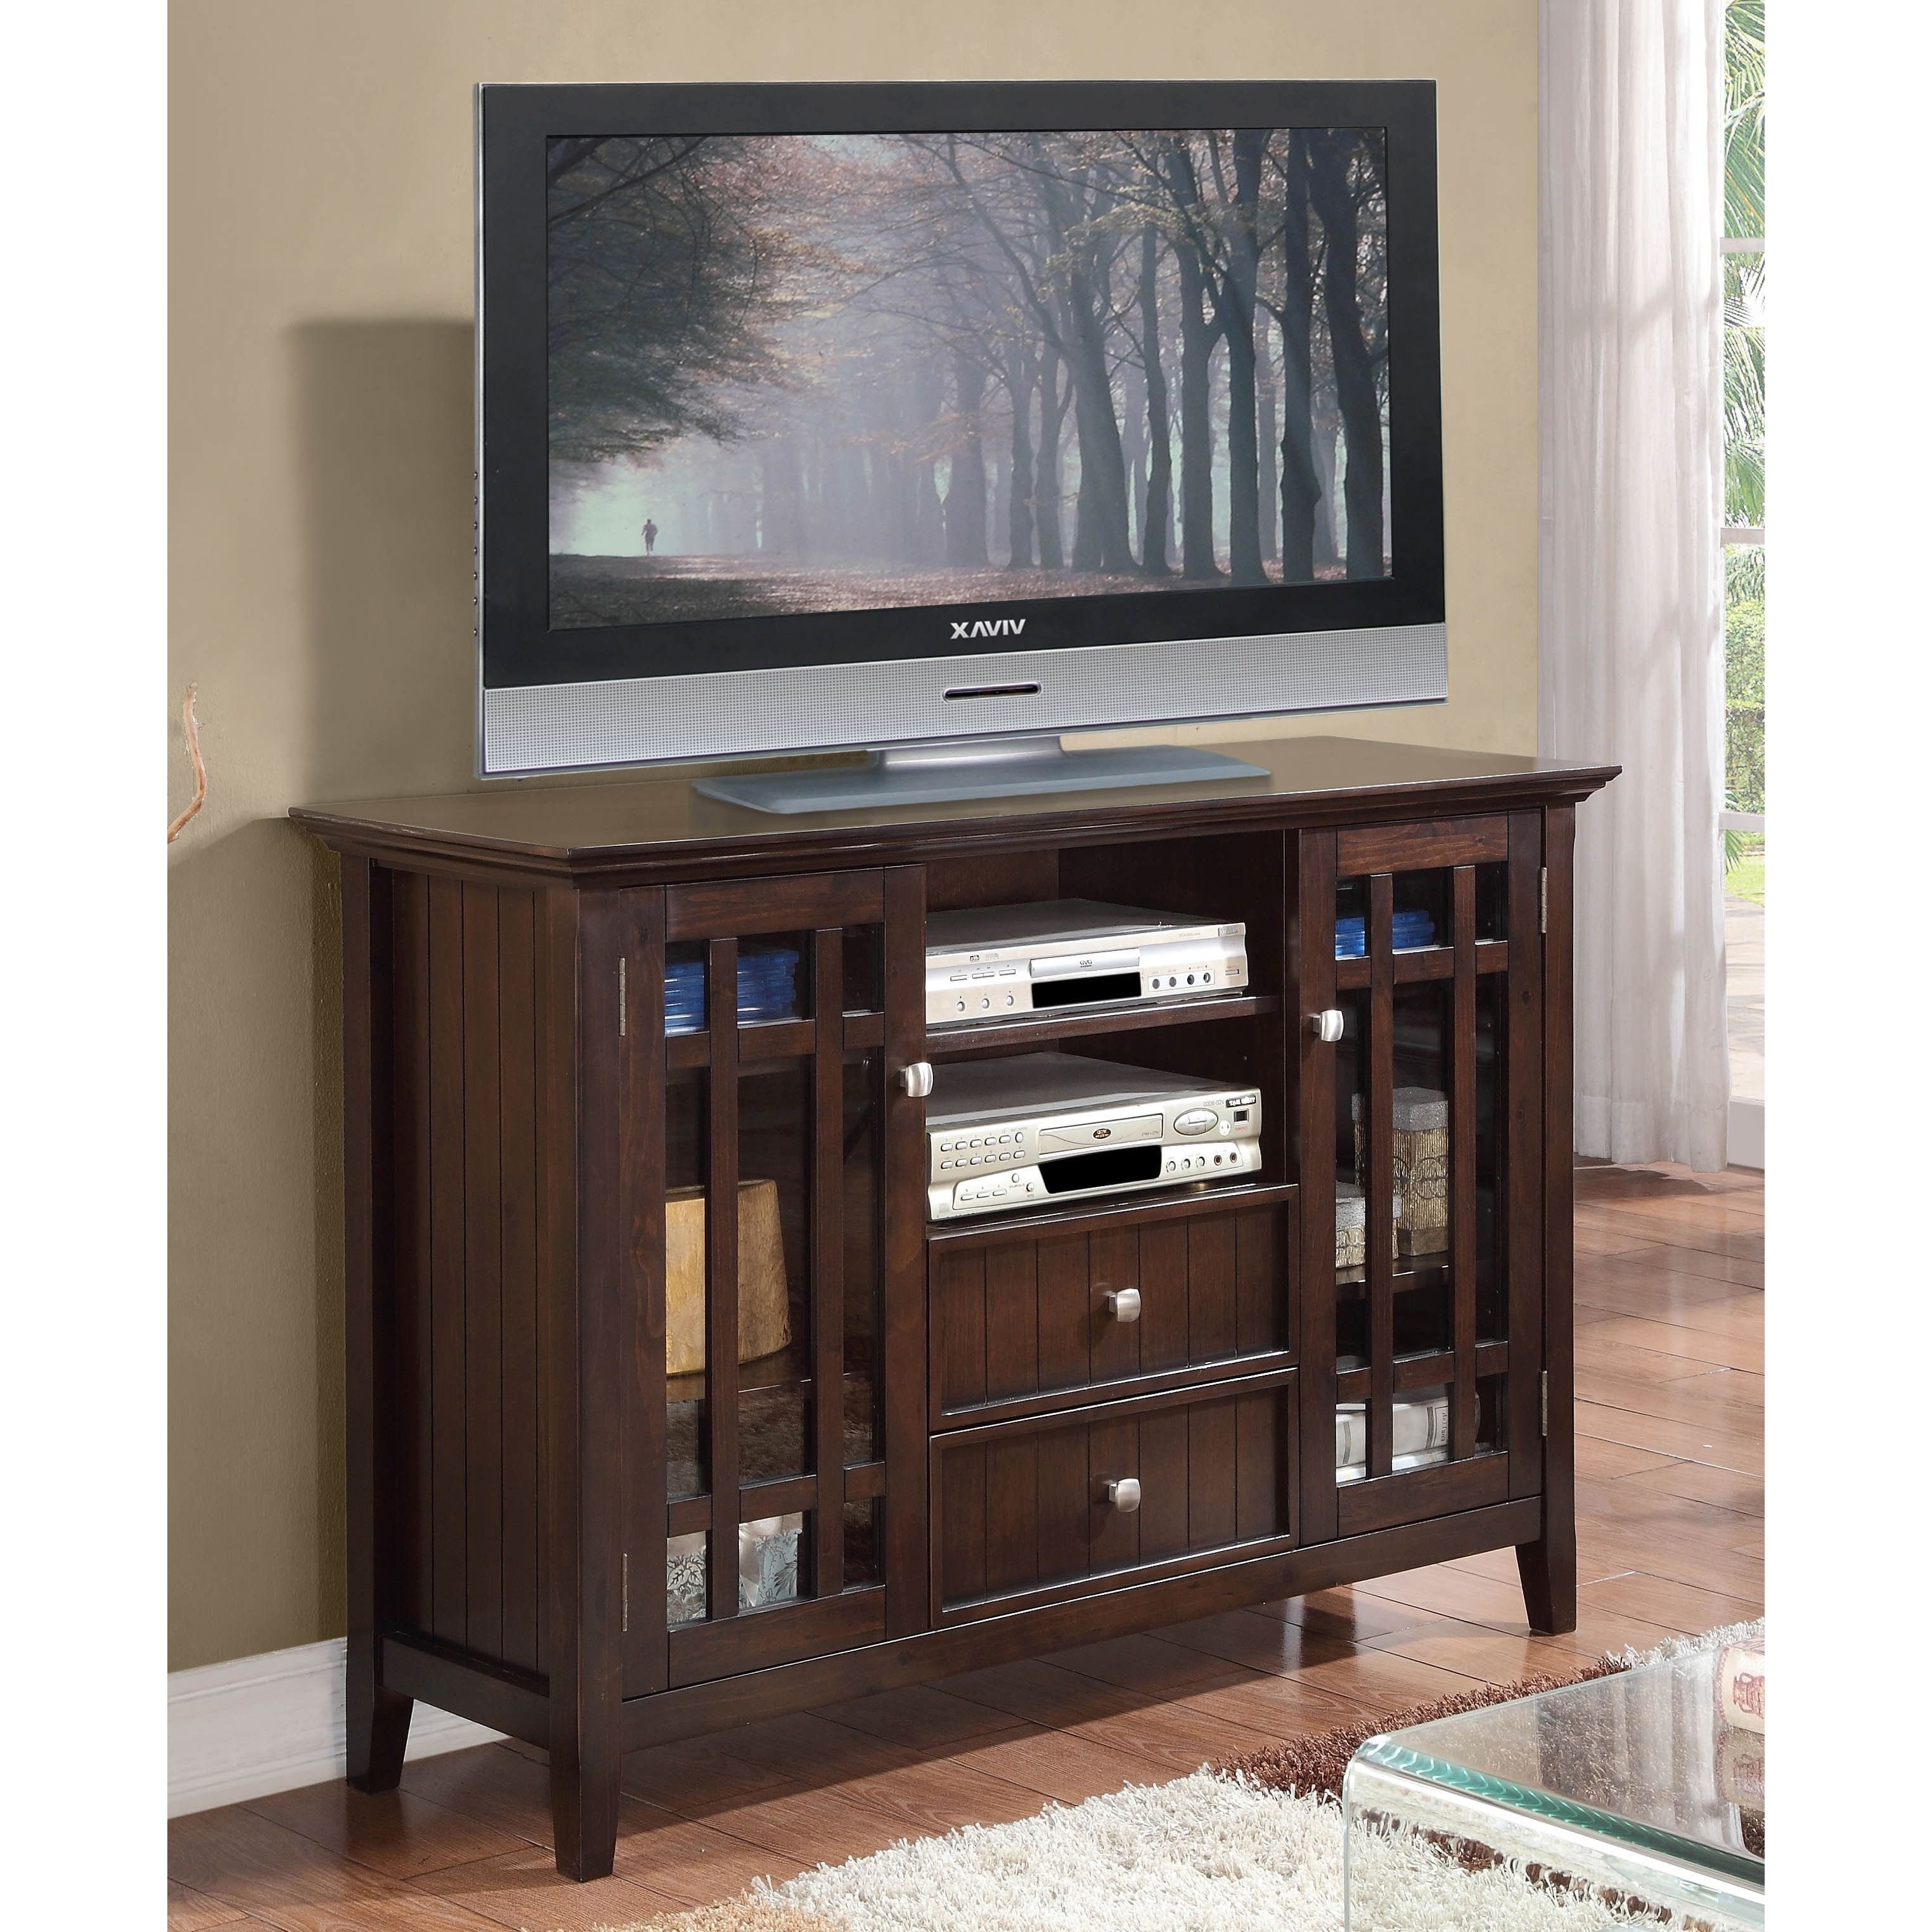 The Freemont Collection 54 Inch Wide Tv Media Stand Is An Elegant